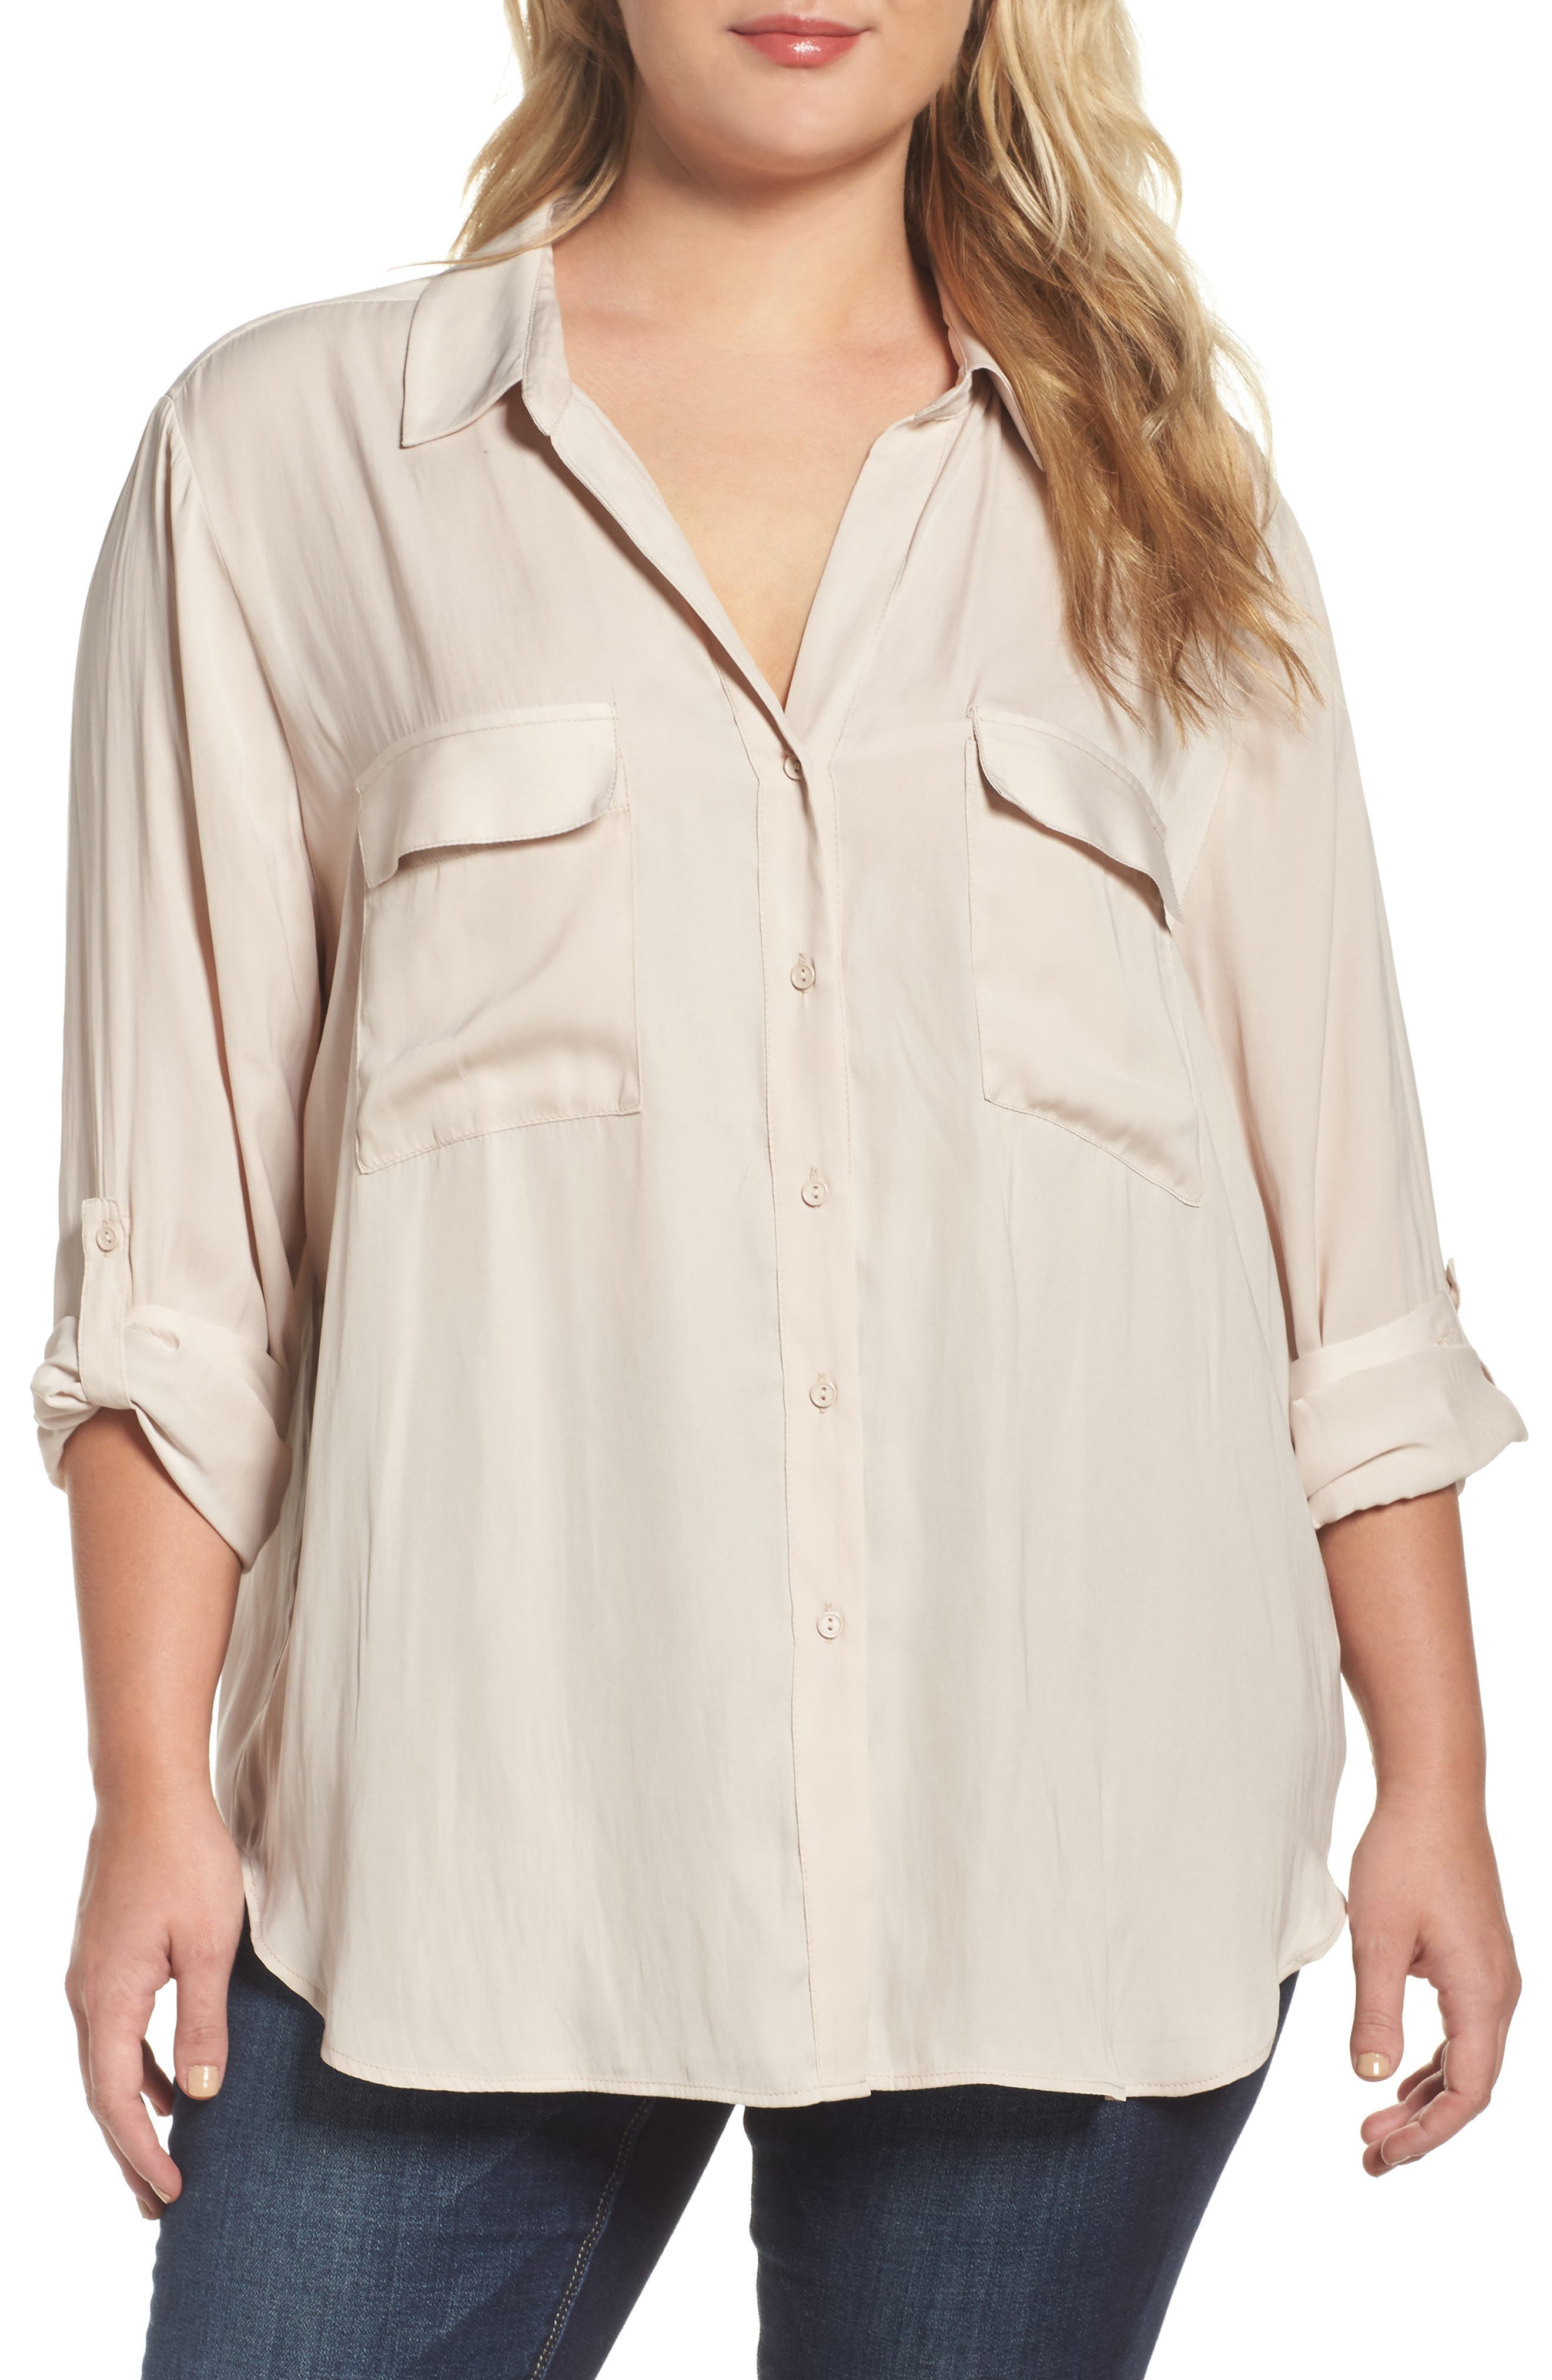 Main Image - Tart Carol Roll-Sleeve Blouse (Plus Size)